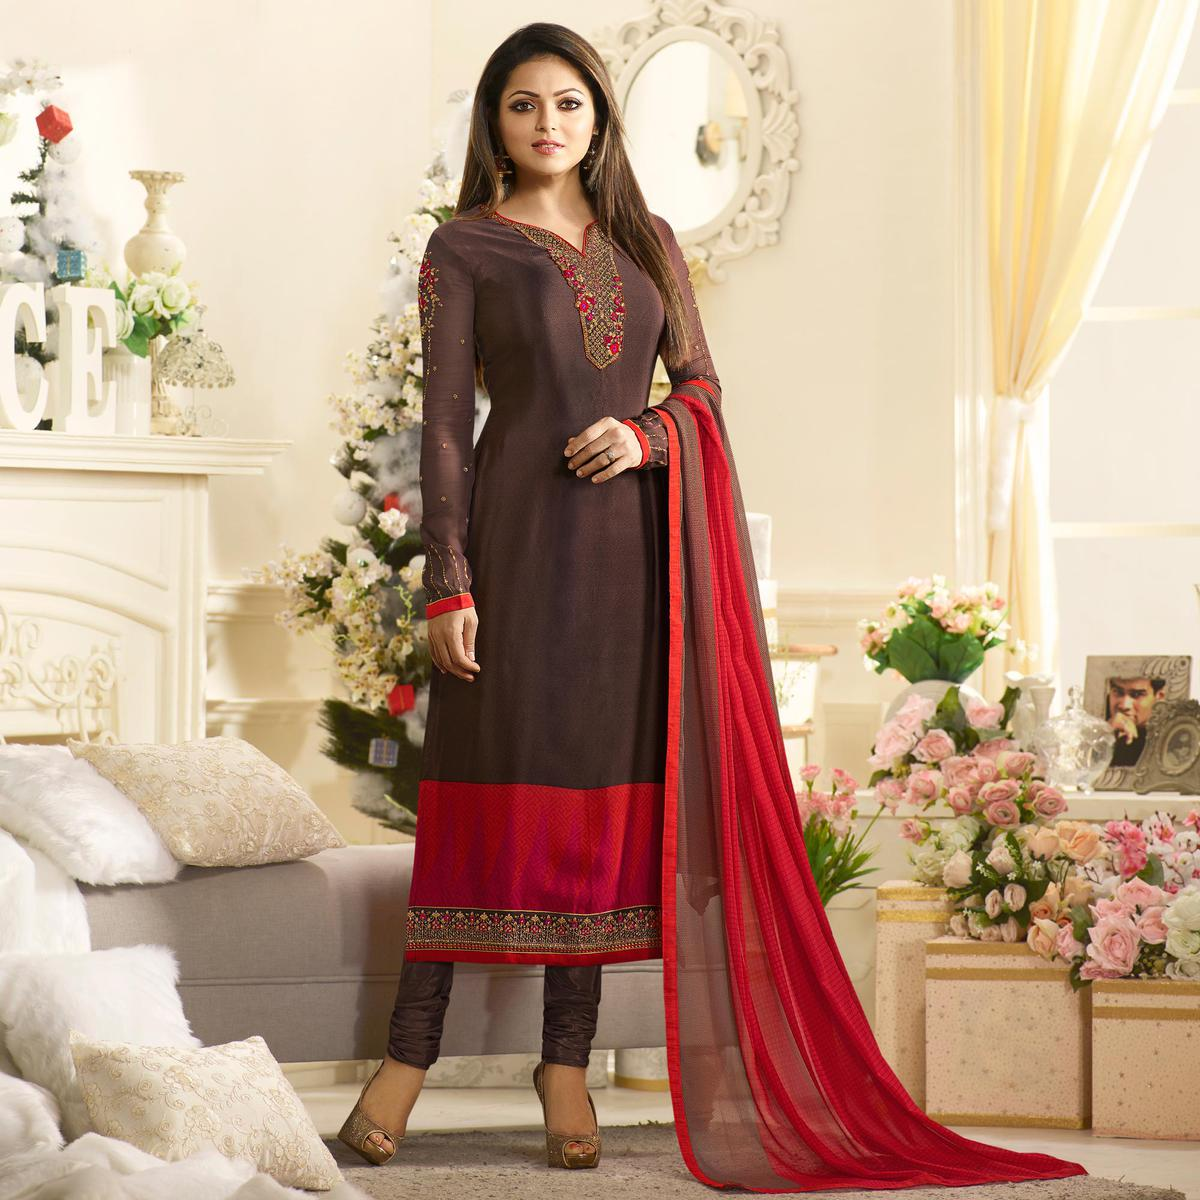 Groovy Brown Colored Partywear Embroidered Salwar suit